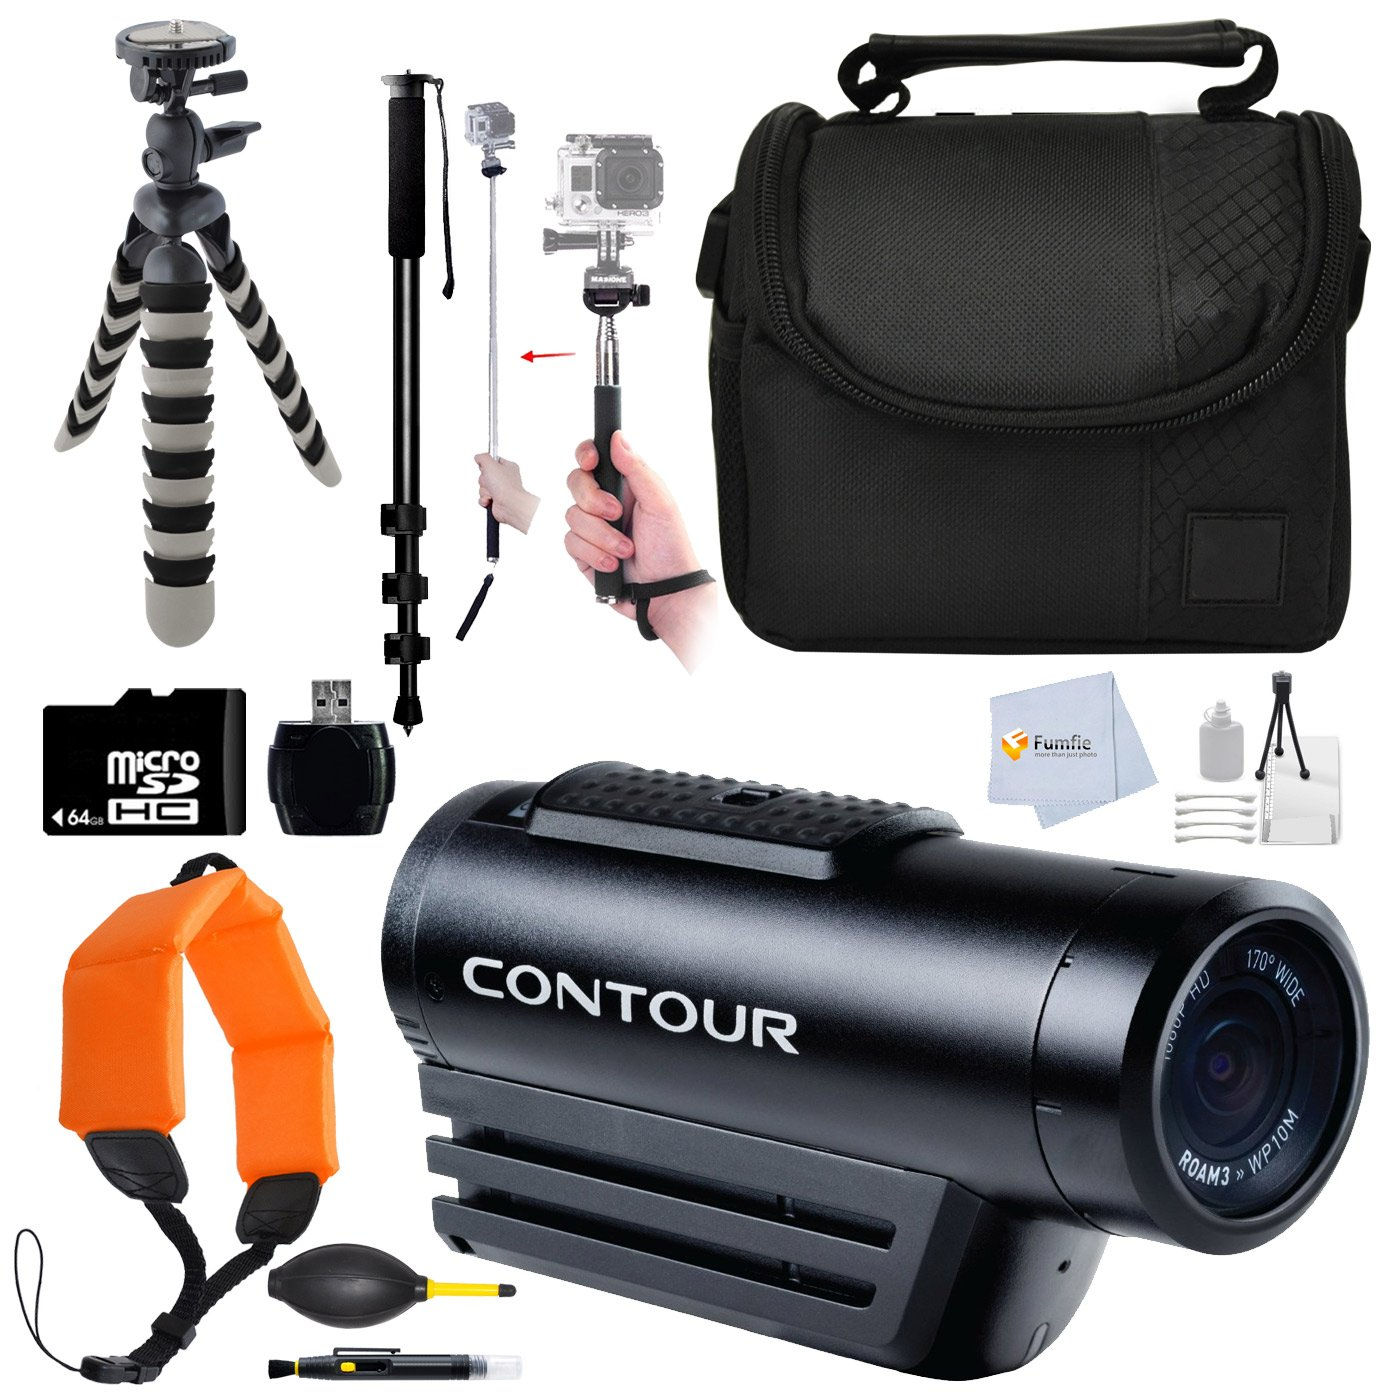 "Contour ROAM3 Waterproof HD Video Camera (Black) + 64Gb Memory Card + Reader + 72"" Monopod + Flexible Gripster Tripod & more"